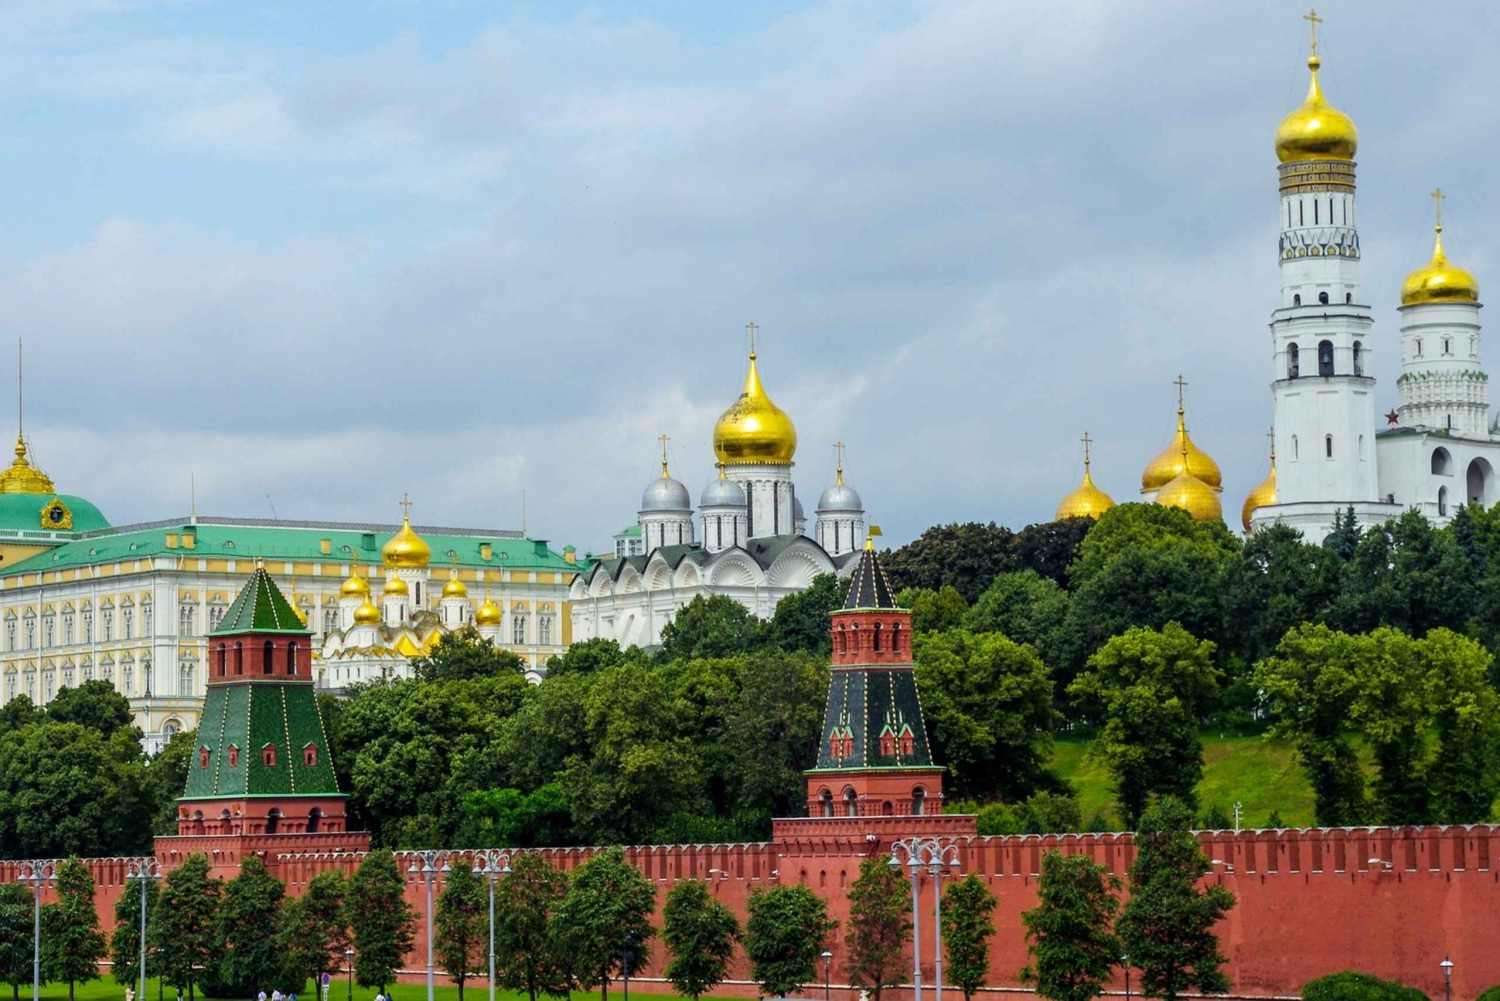 Guided Red Square to Zaryadie Park Walking Tour